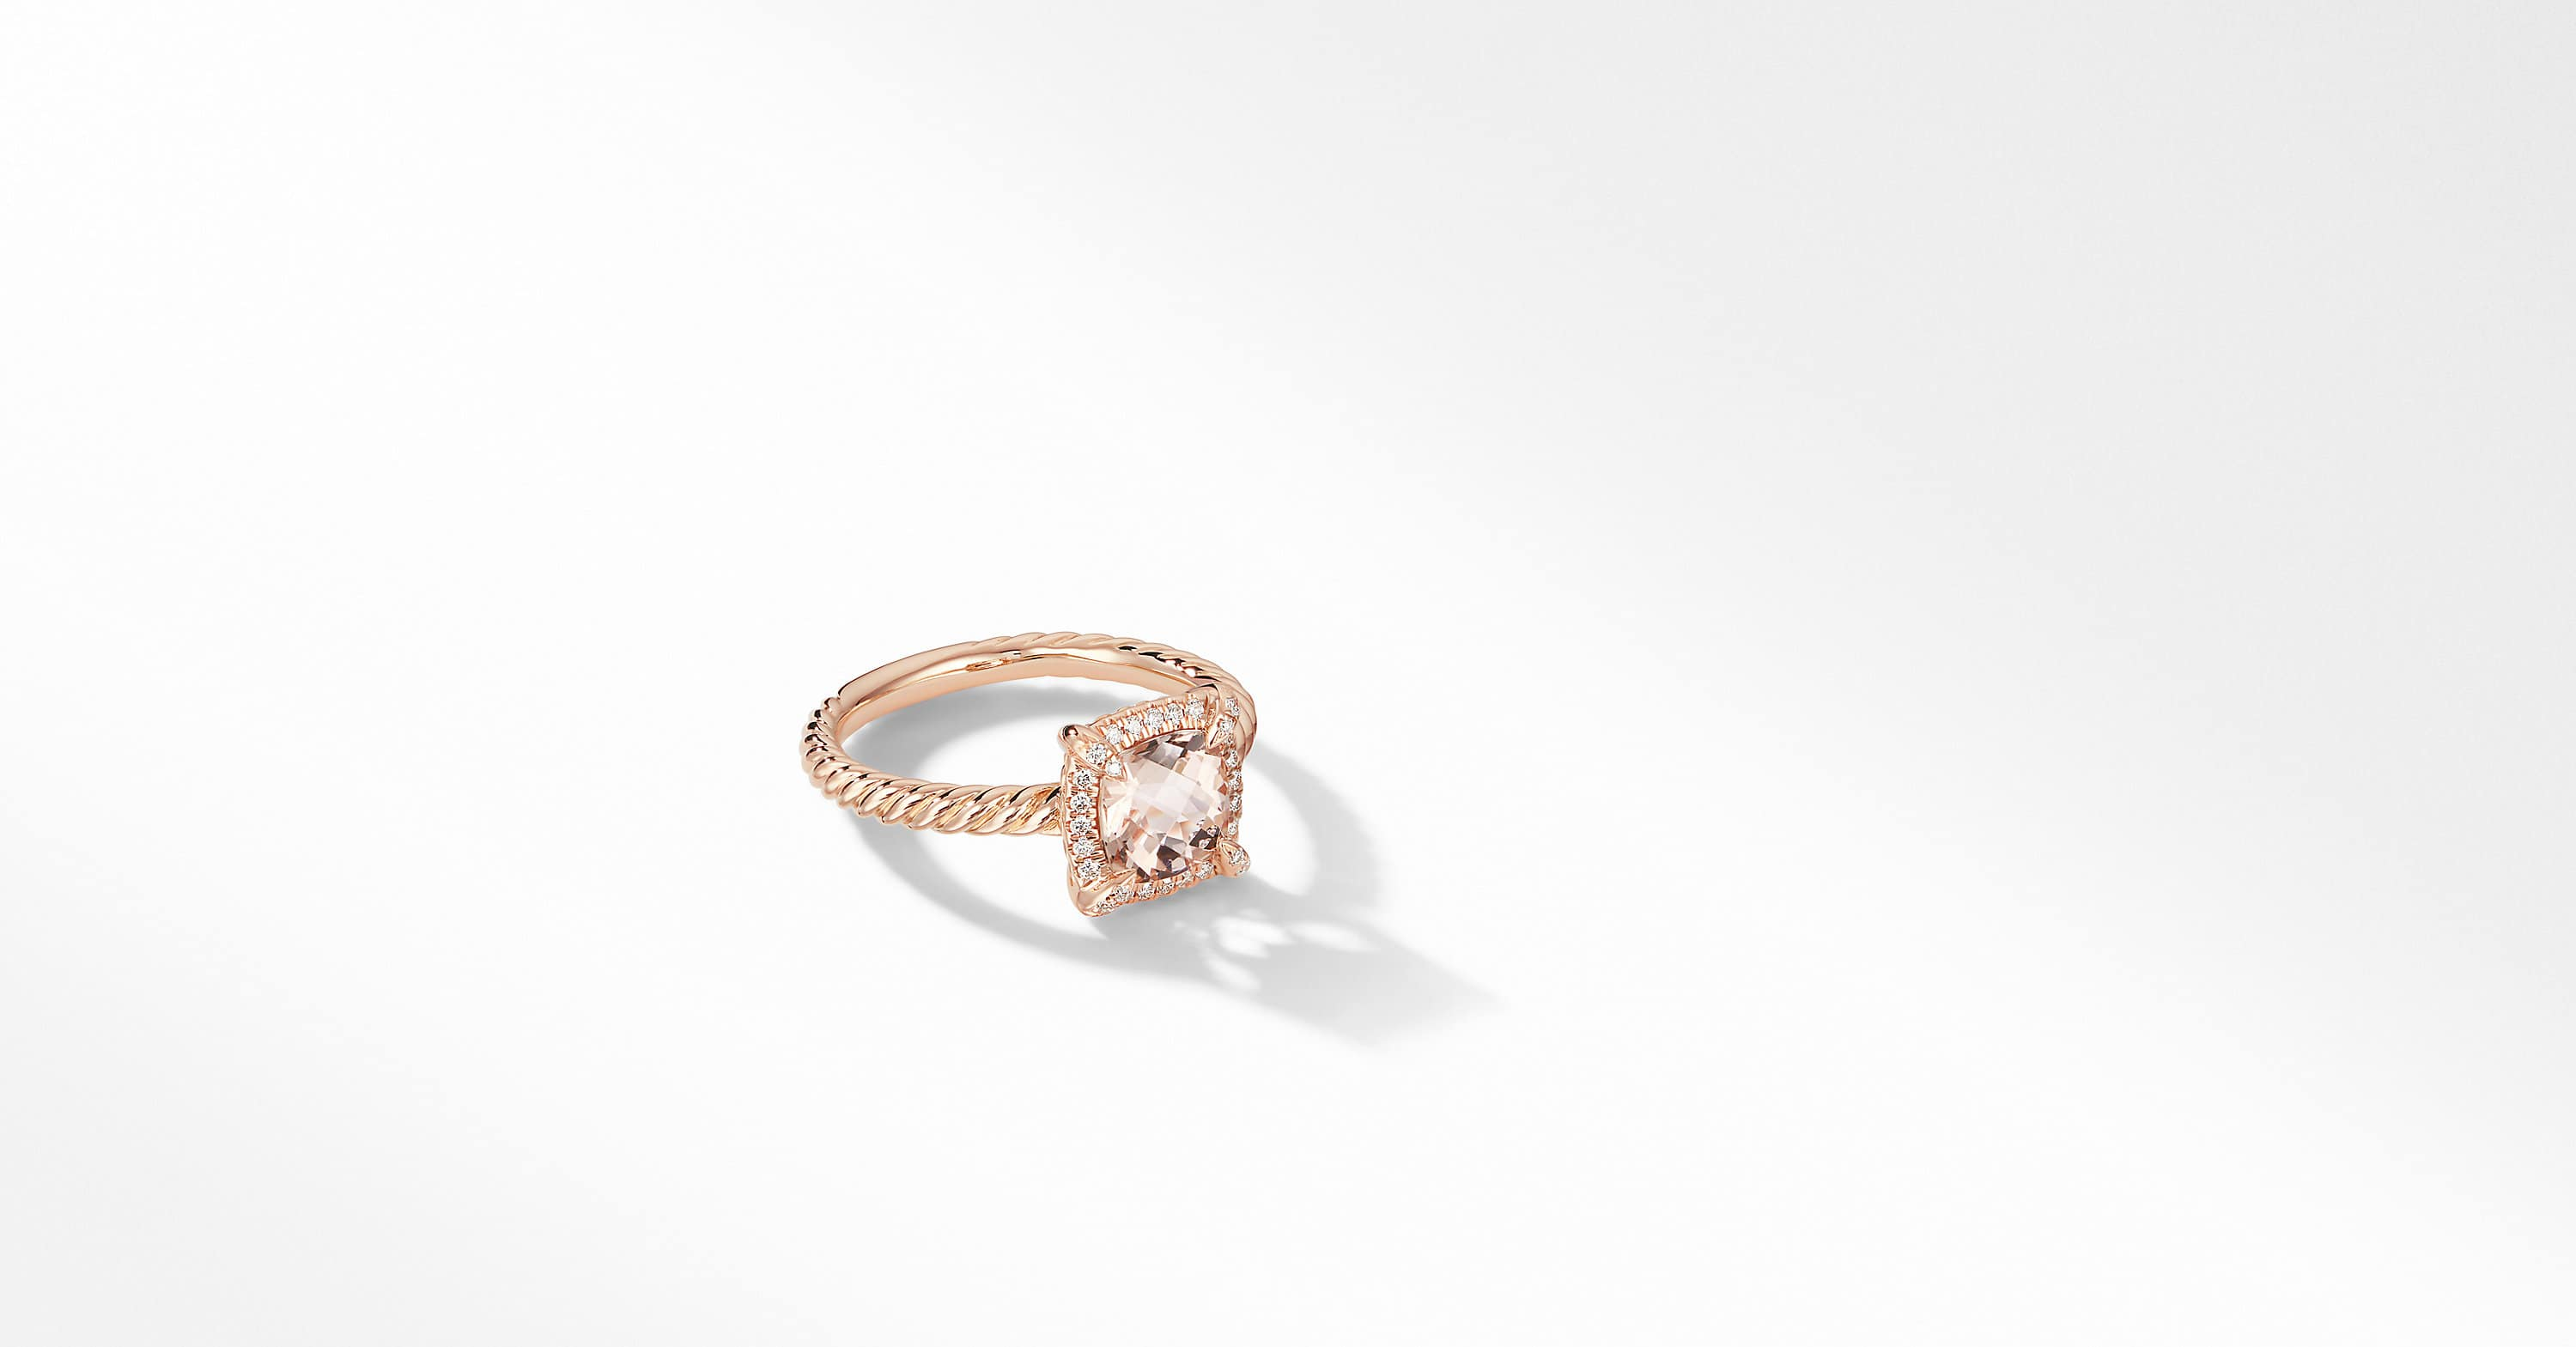 Petite Chatelaine Pavé Bezel Ring in 18K Rose Gold, 7mm